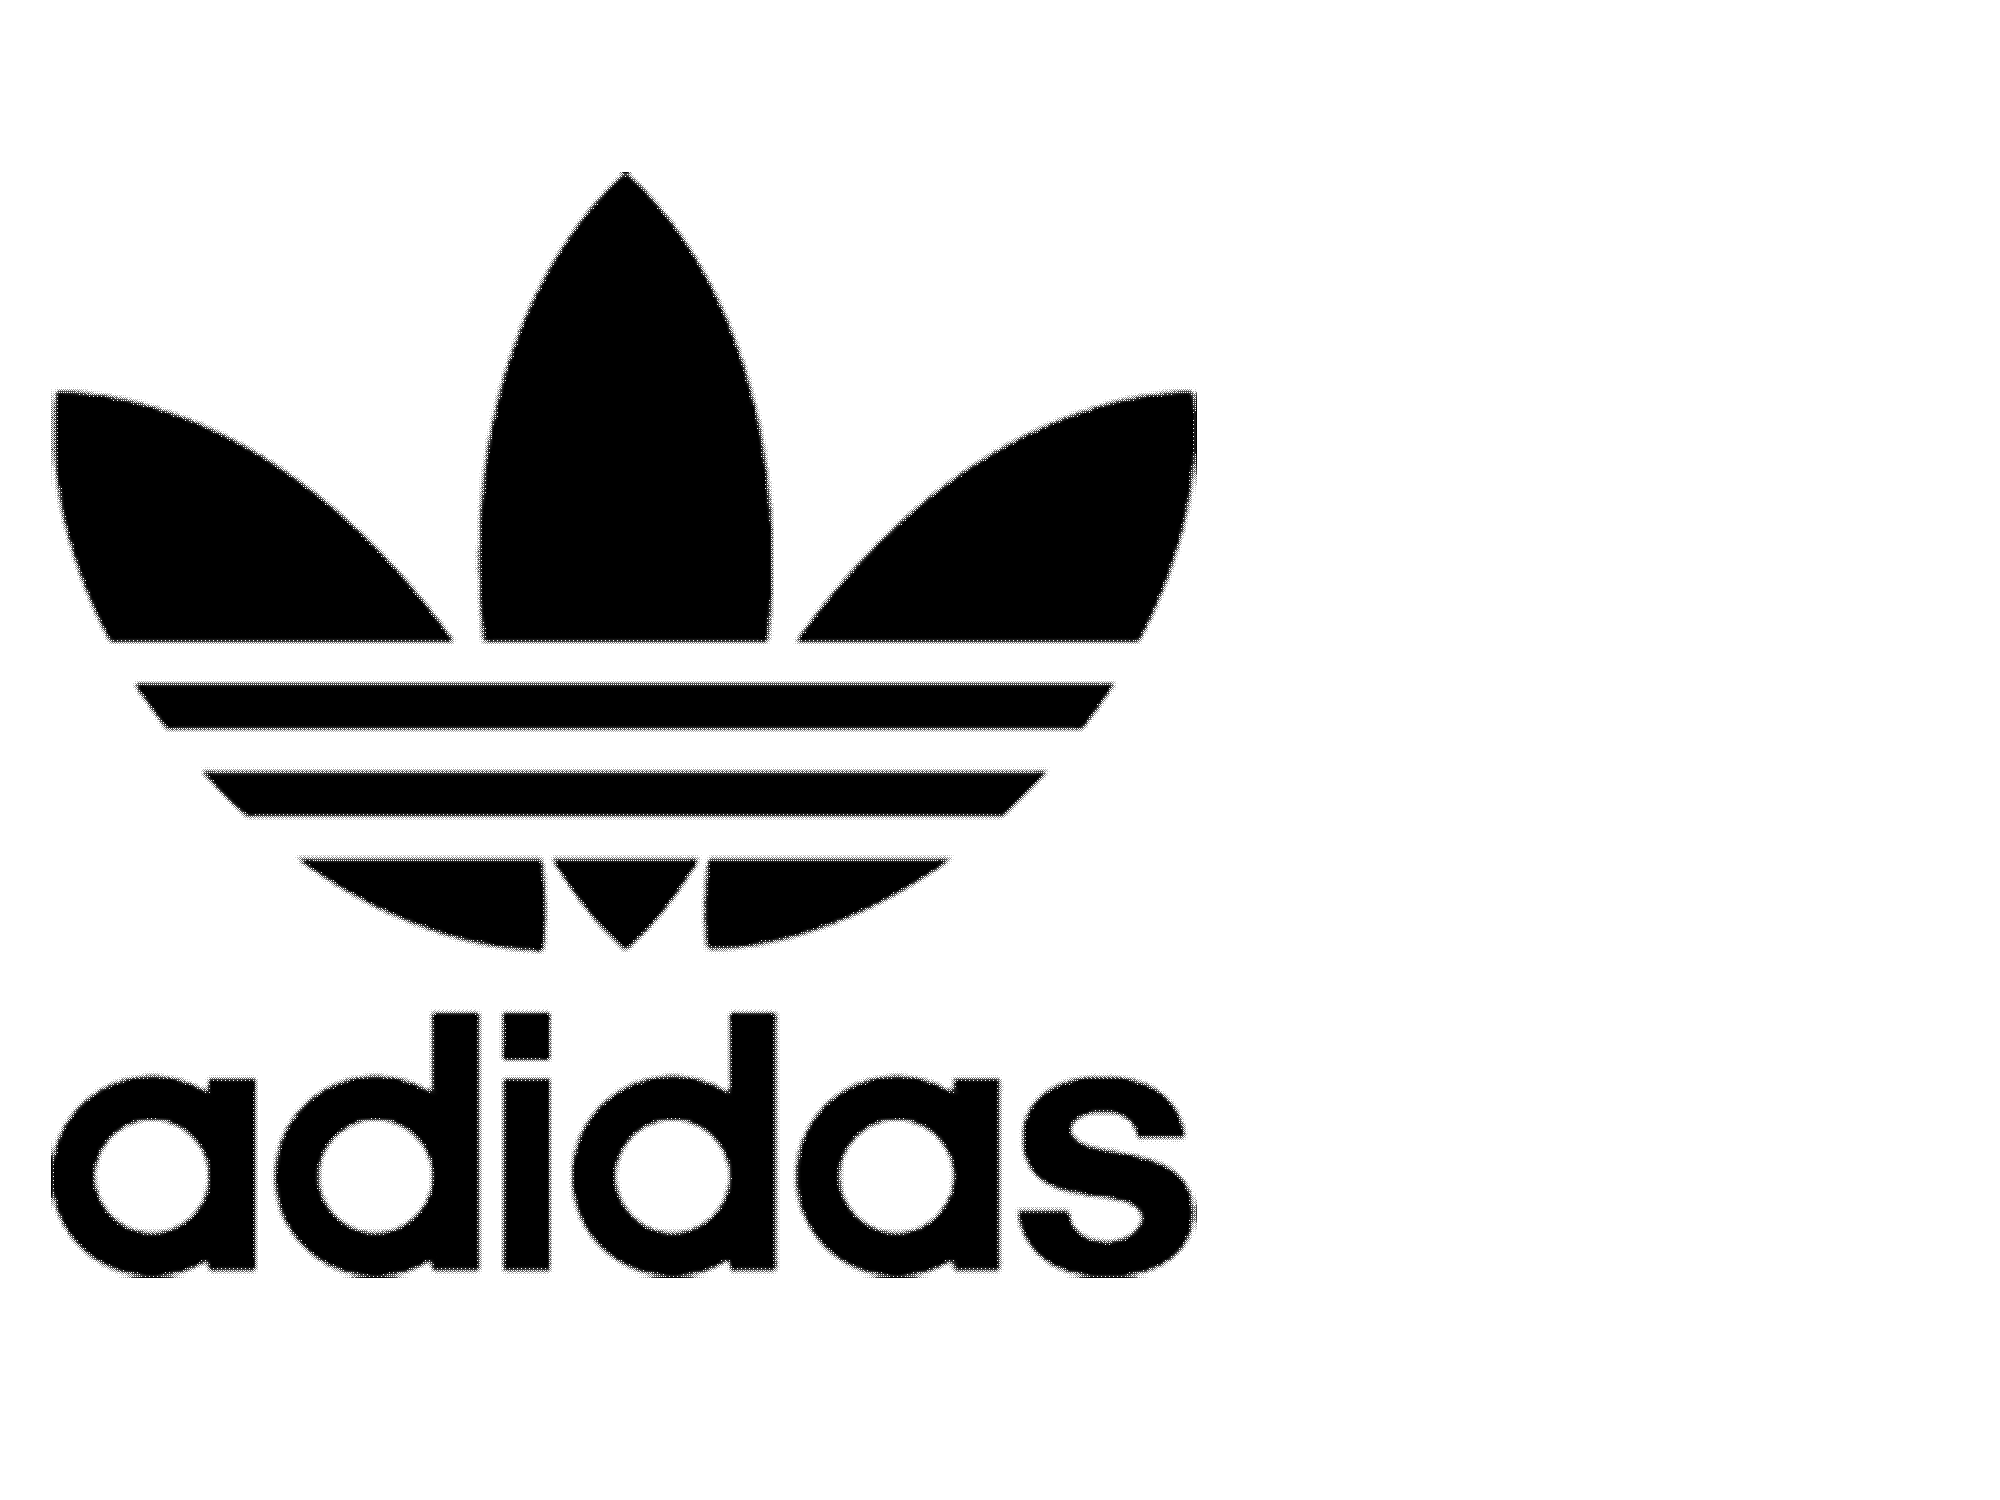 Adidas png logo. Free transparent logos originals